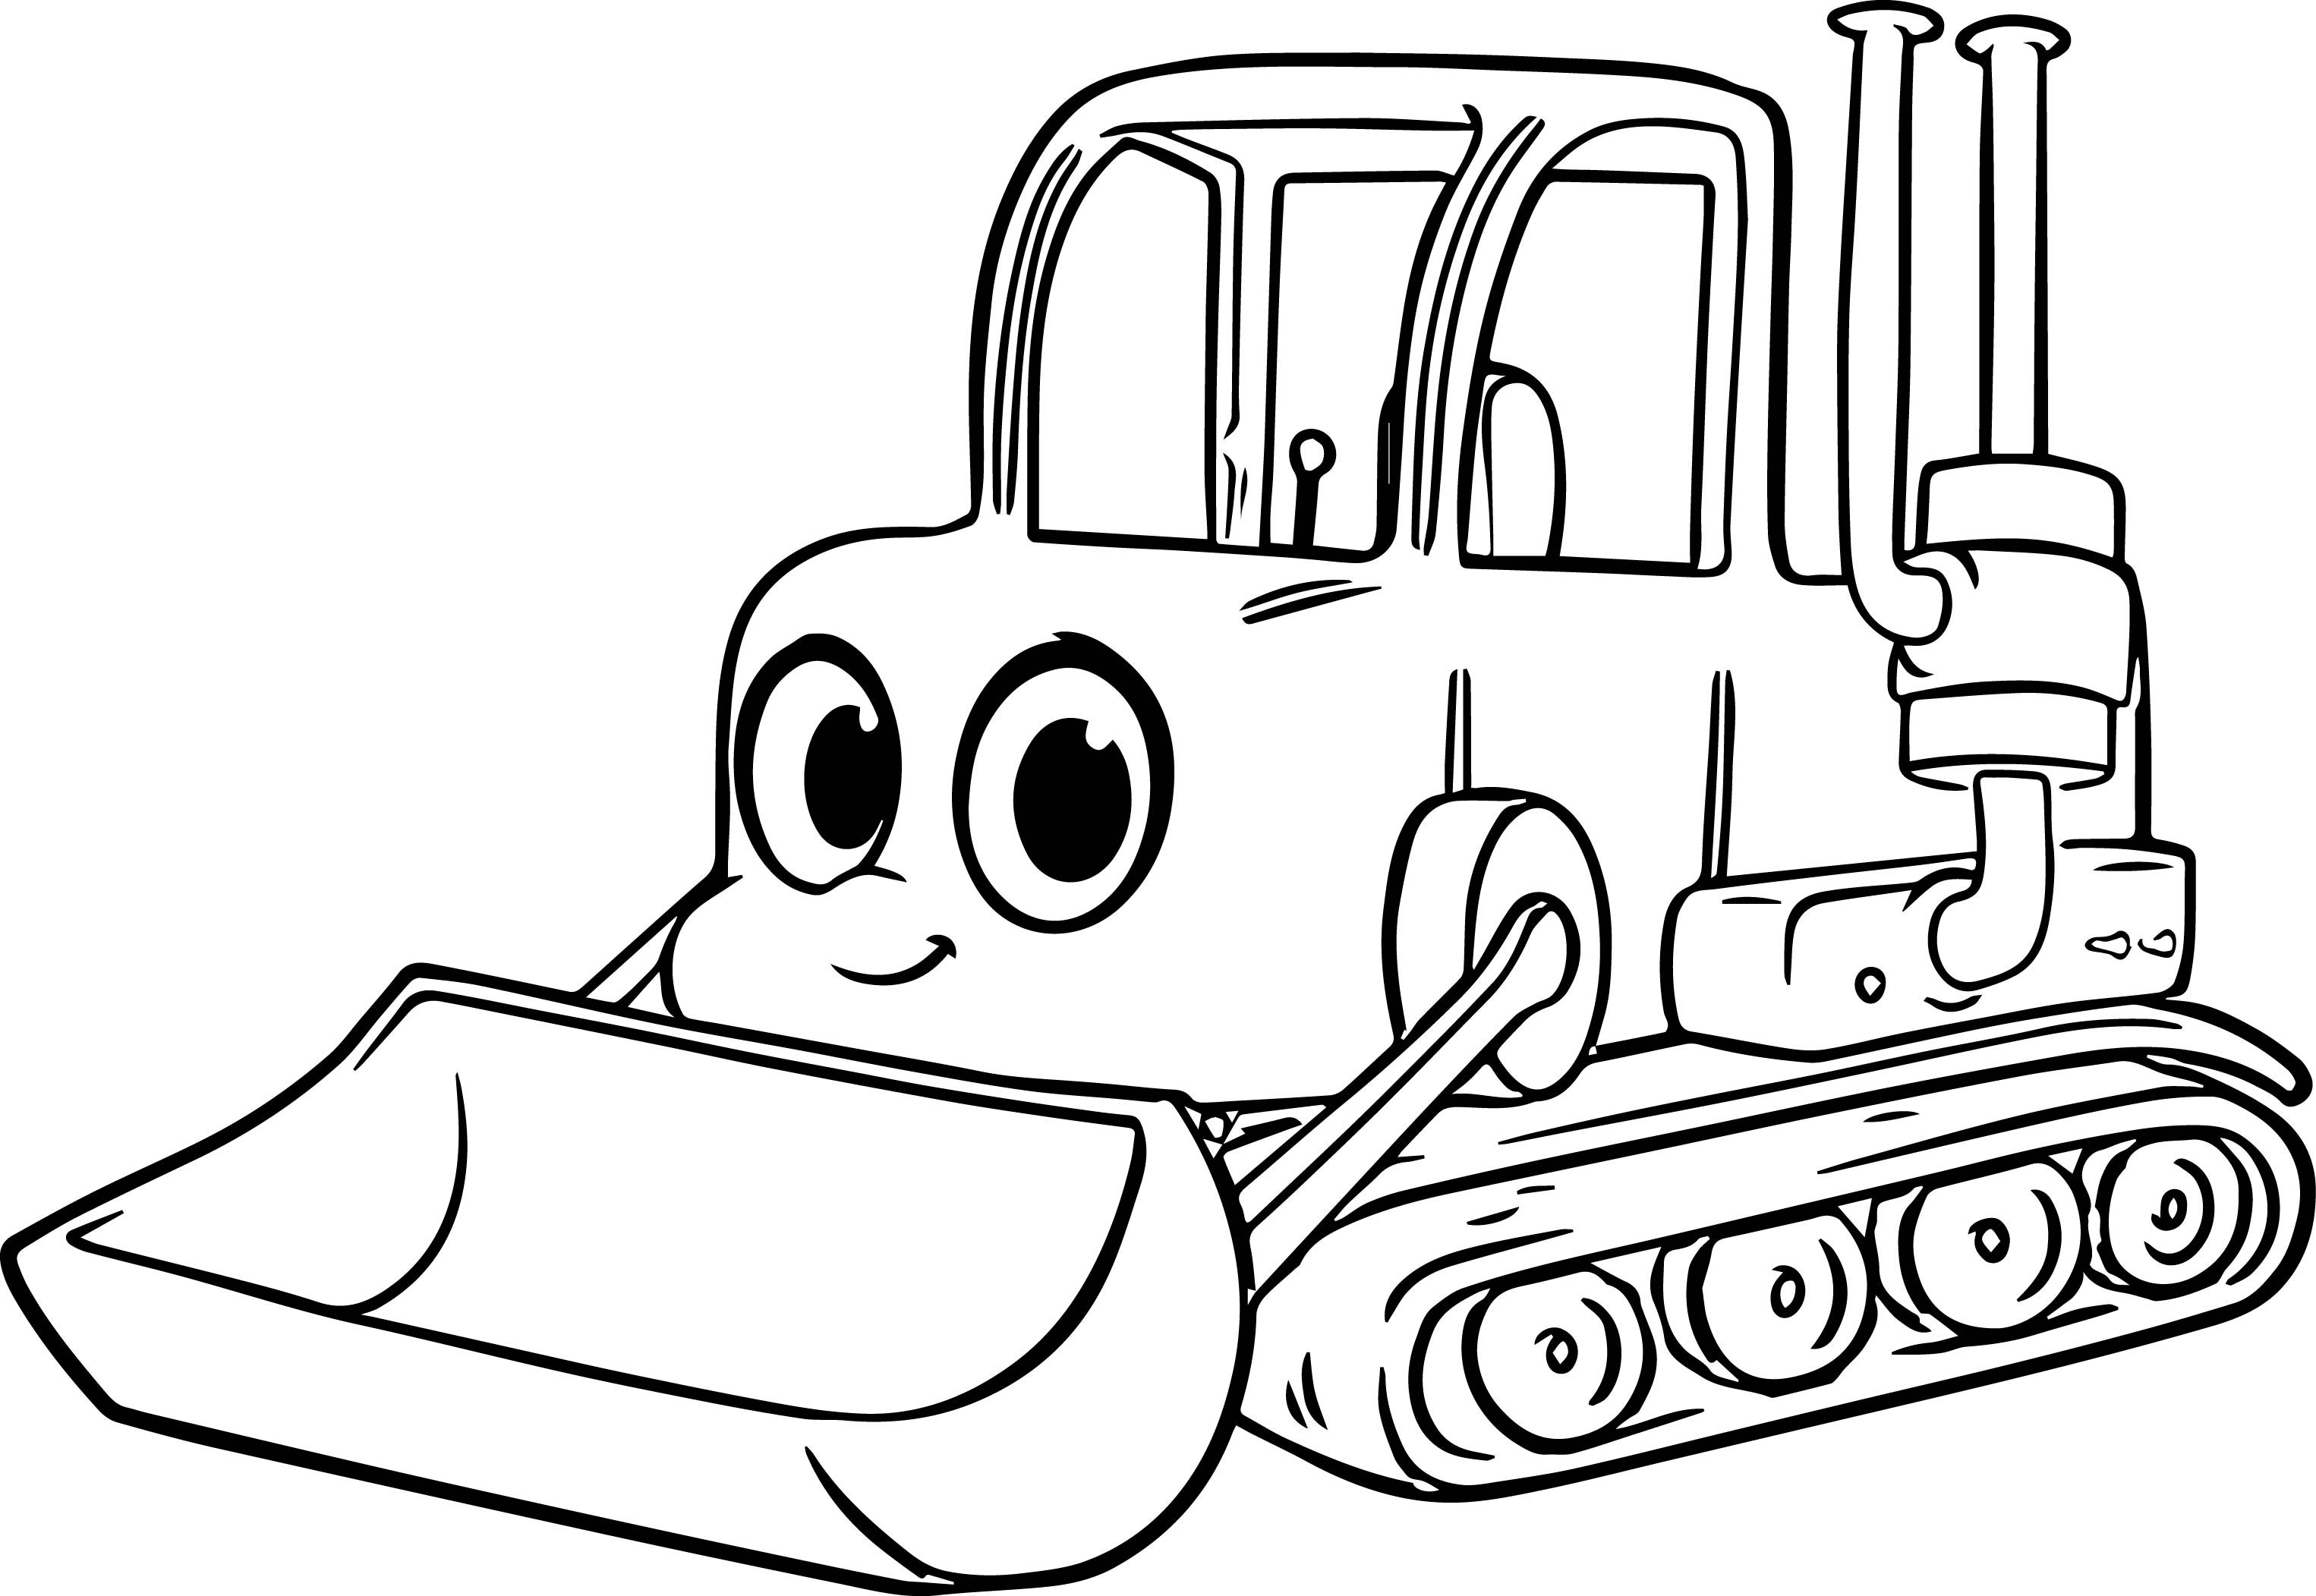 construction pictures to color construction vehicles coloring pages elegant construction to construction color pictures